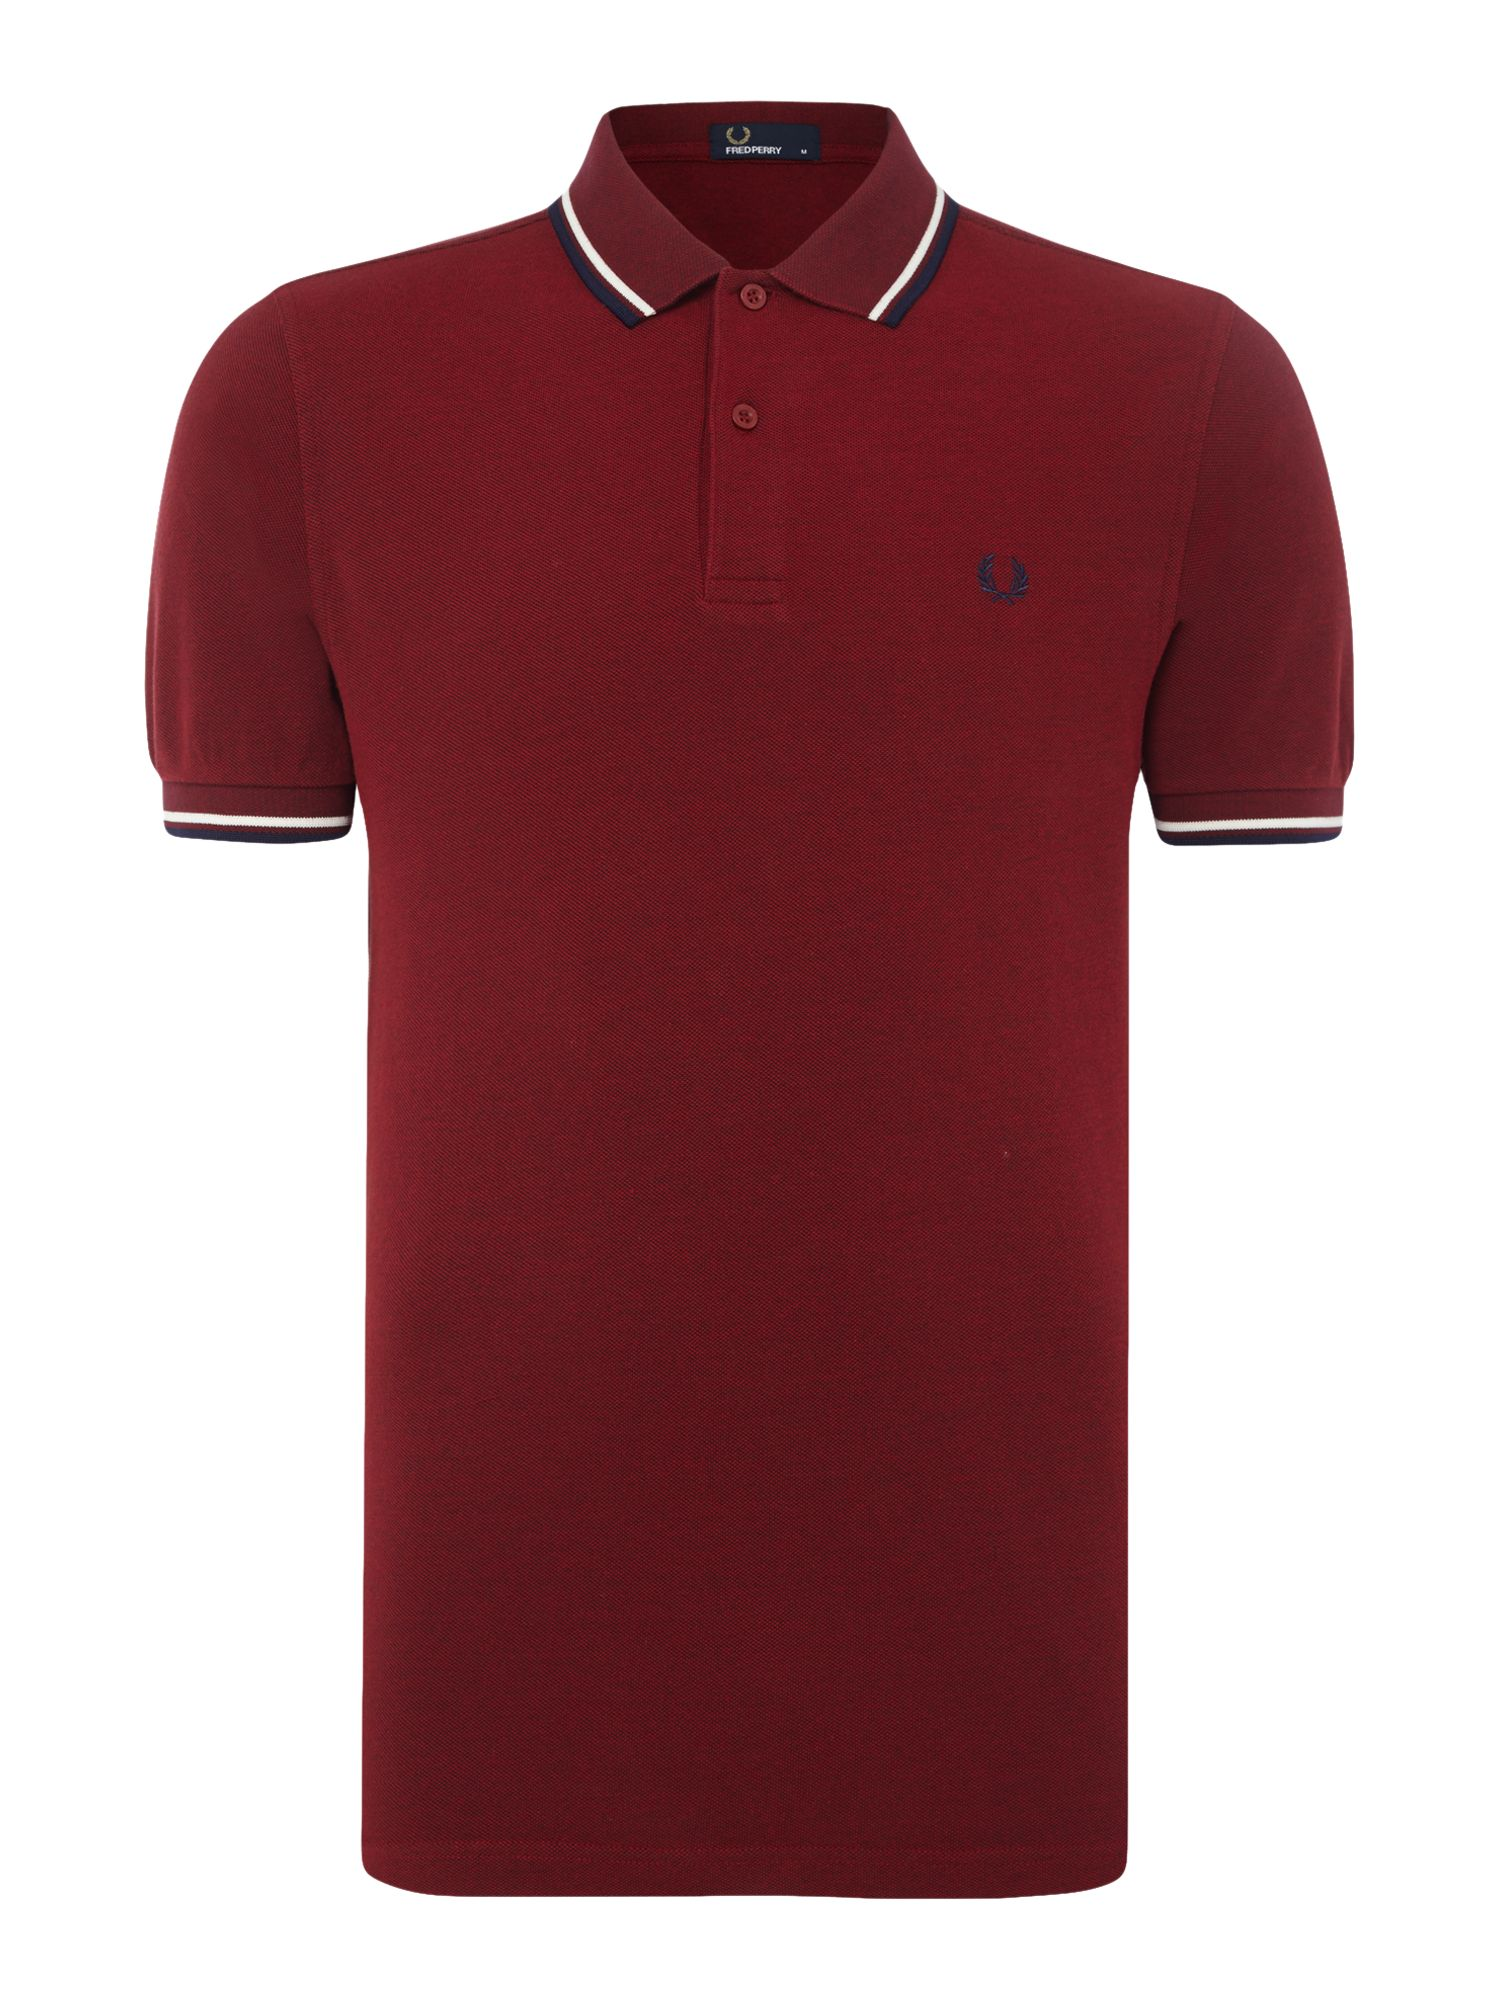 Mens Fred Perry Plain Twin Tipped Polo Shirt Maroon